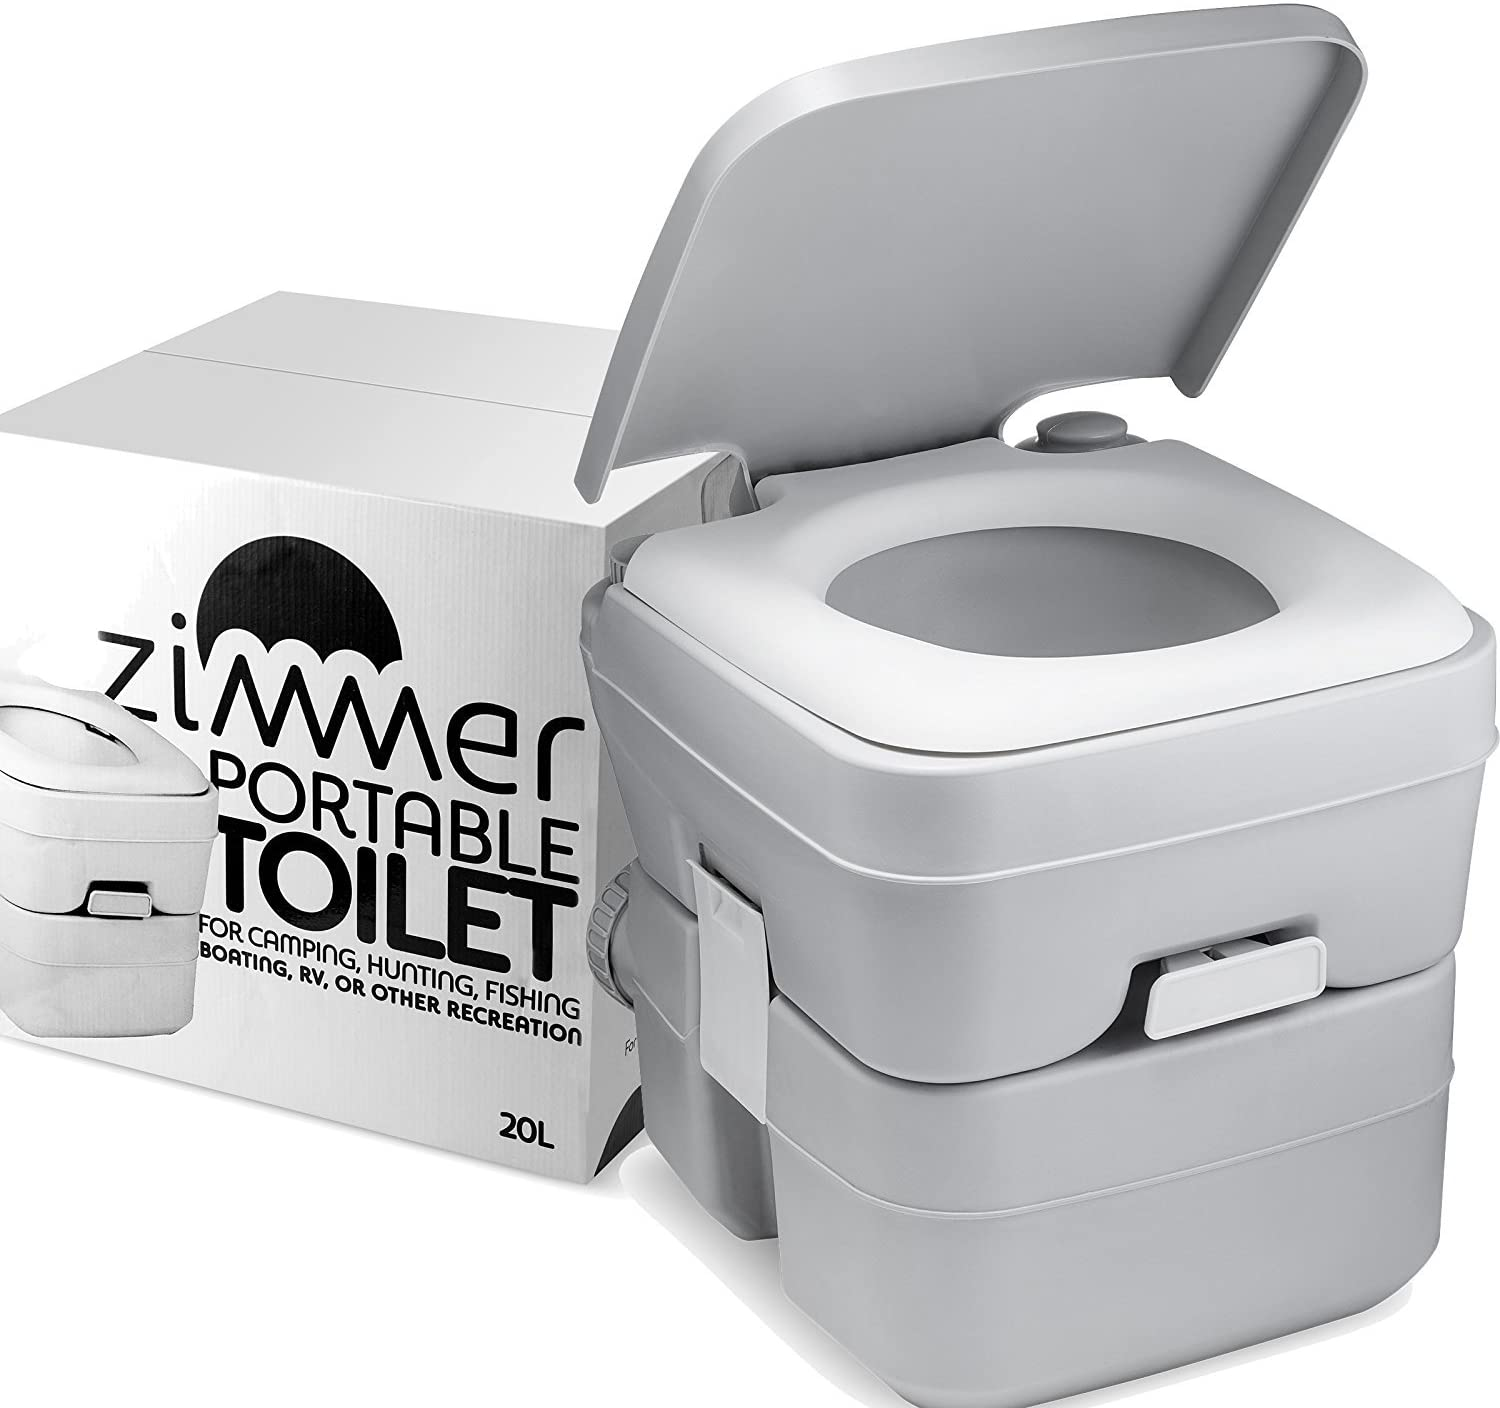 Portable Toilet Camping Porta Potty - 5 Gallon Waste Tank - Durable, Leak-Proof, Flushable Easy to use RV Toilet With Detachable Tanks for Effortless Cleaning & Carrying, for Travel, Boating, and Trips